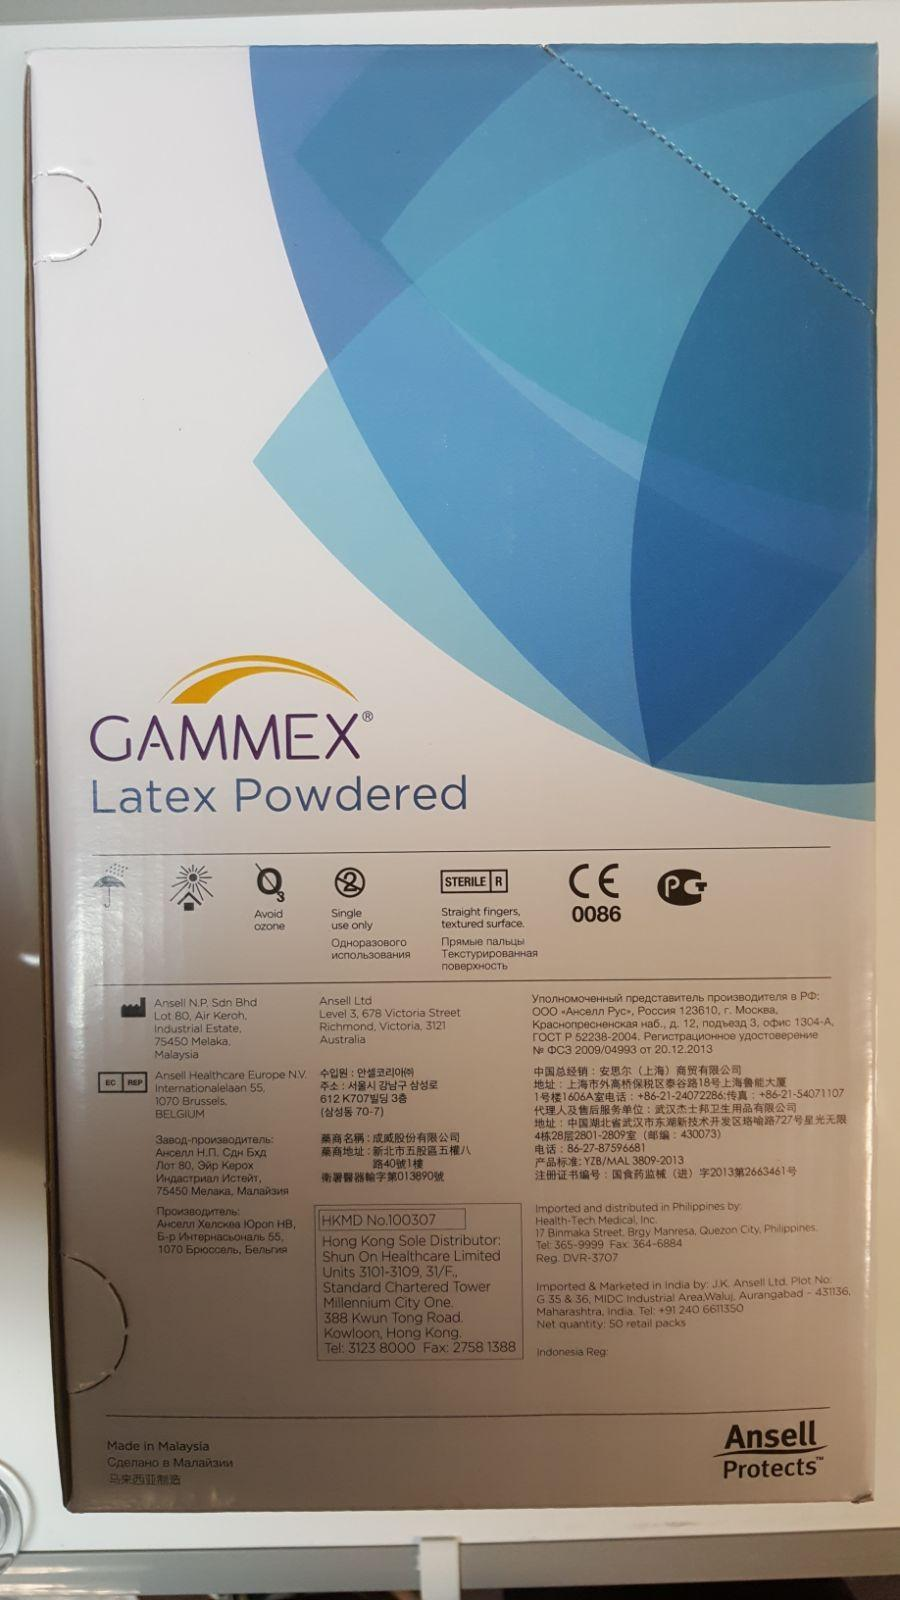 GAMMEX Latex Powdered #8.5, Box 50